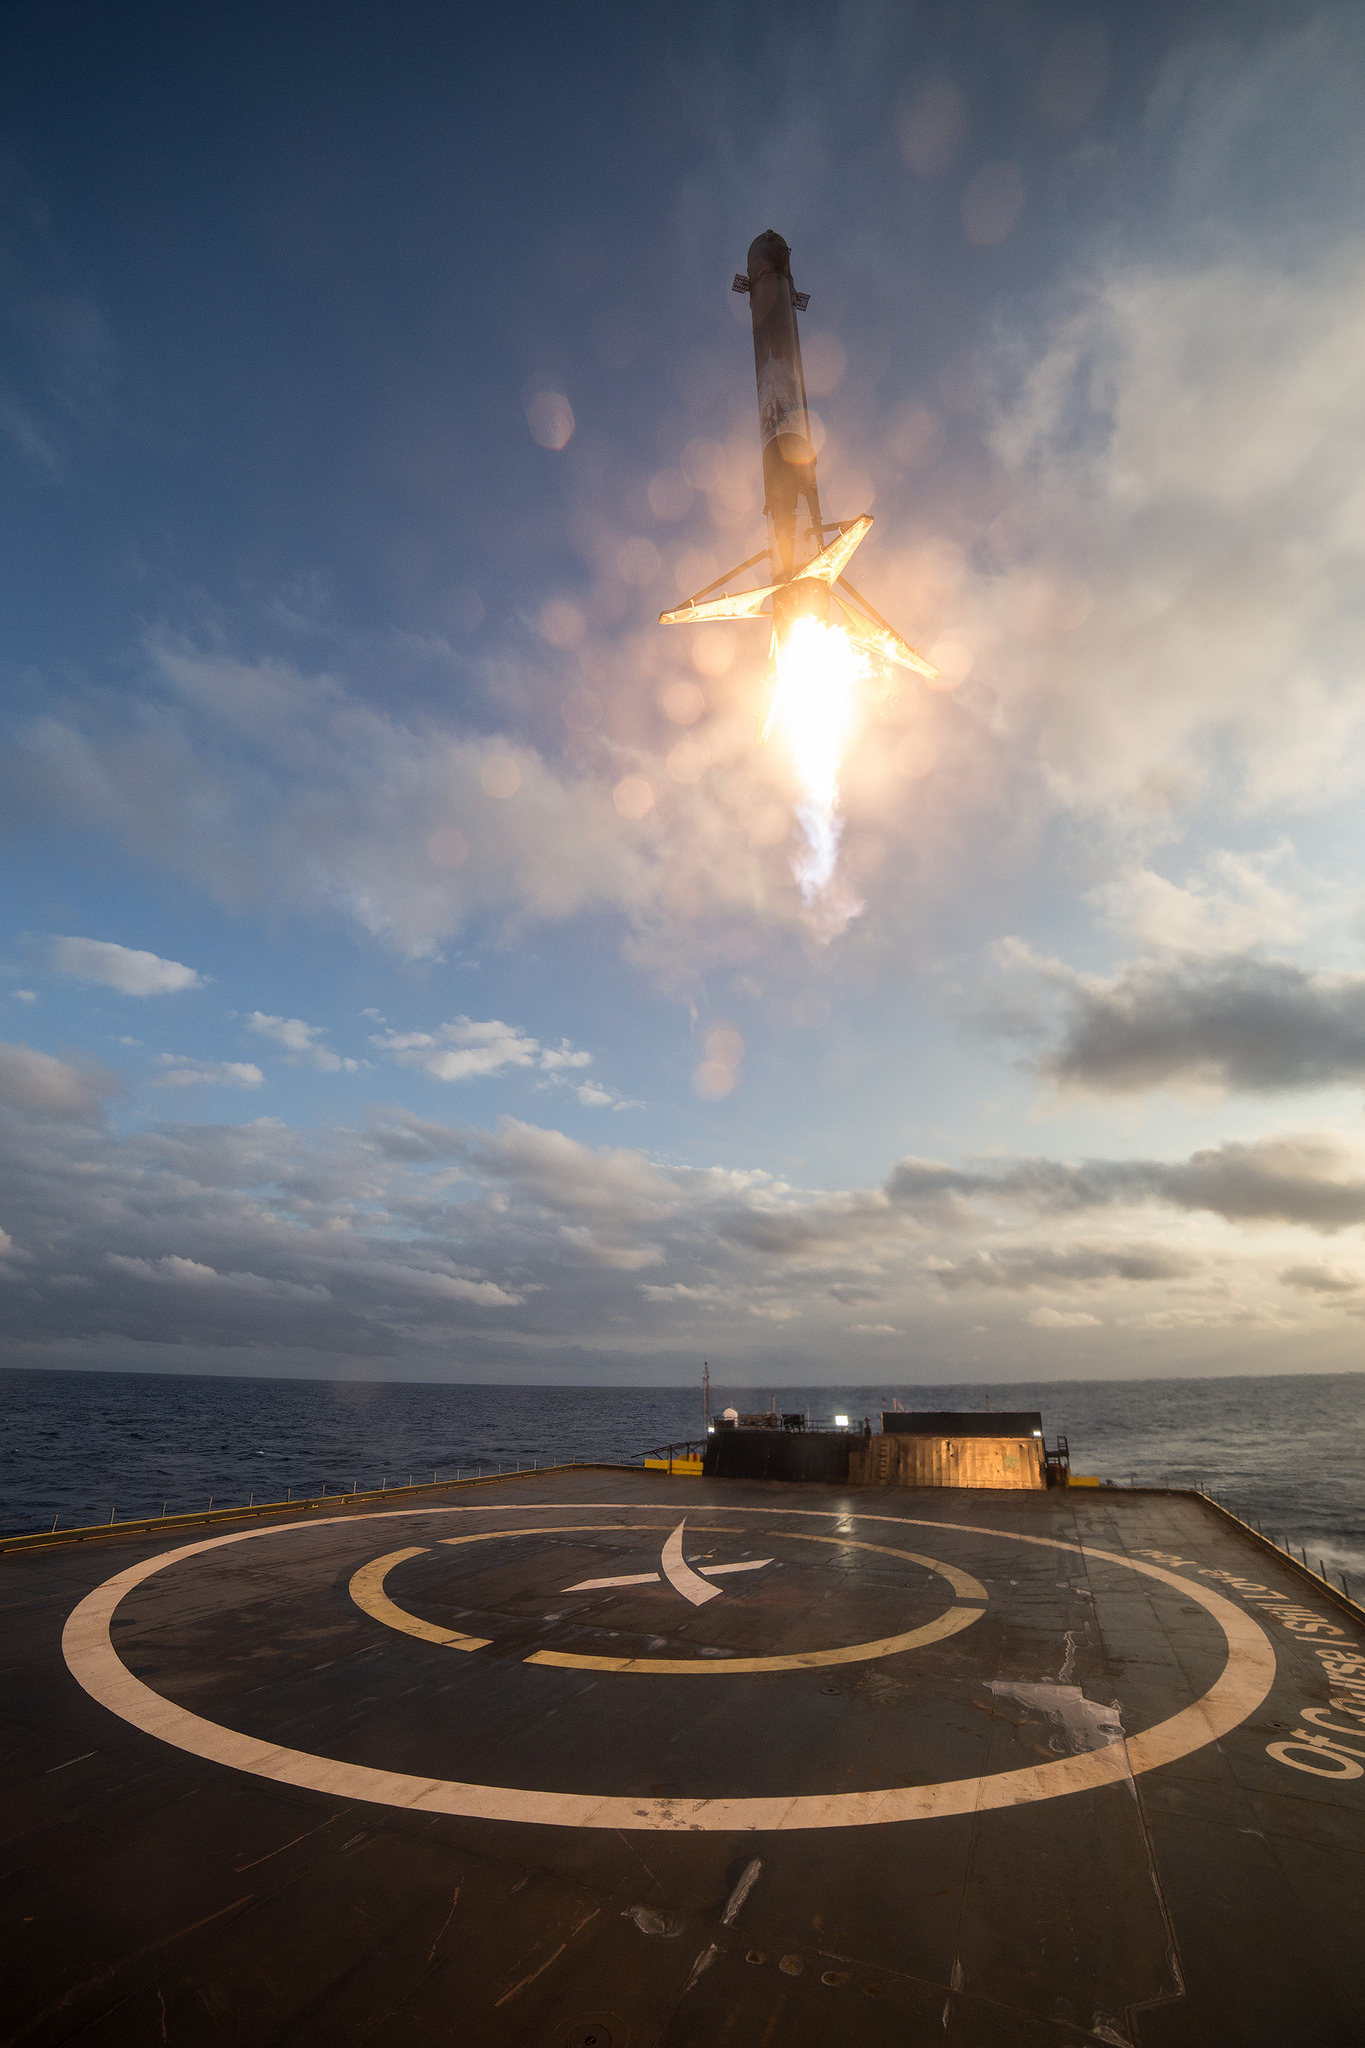 The rocket coming in for landing.